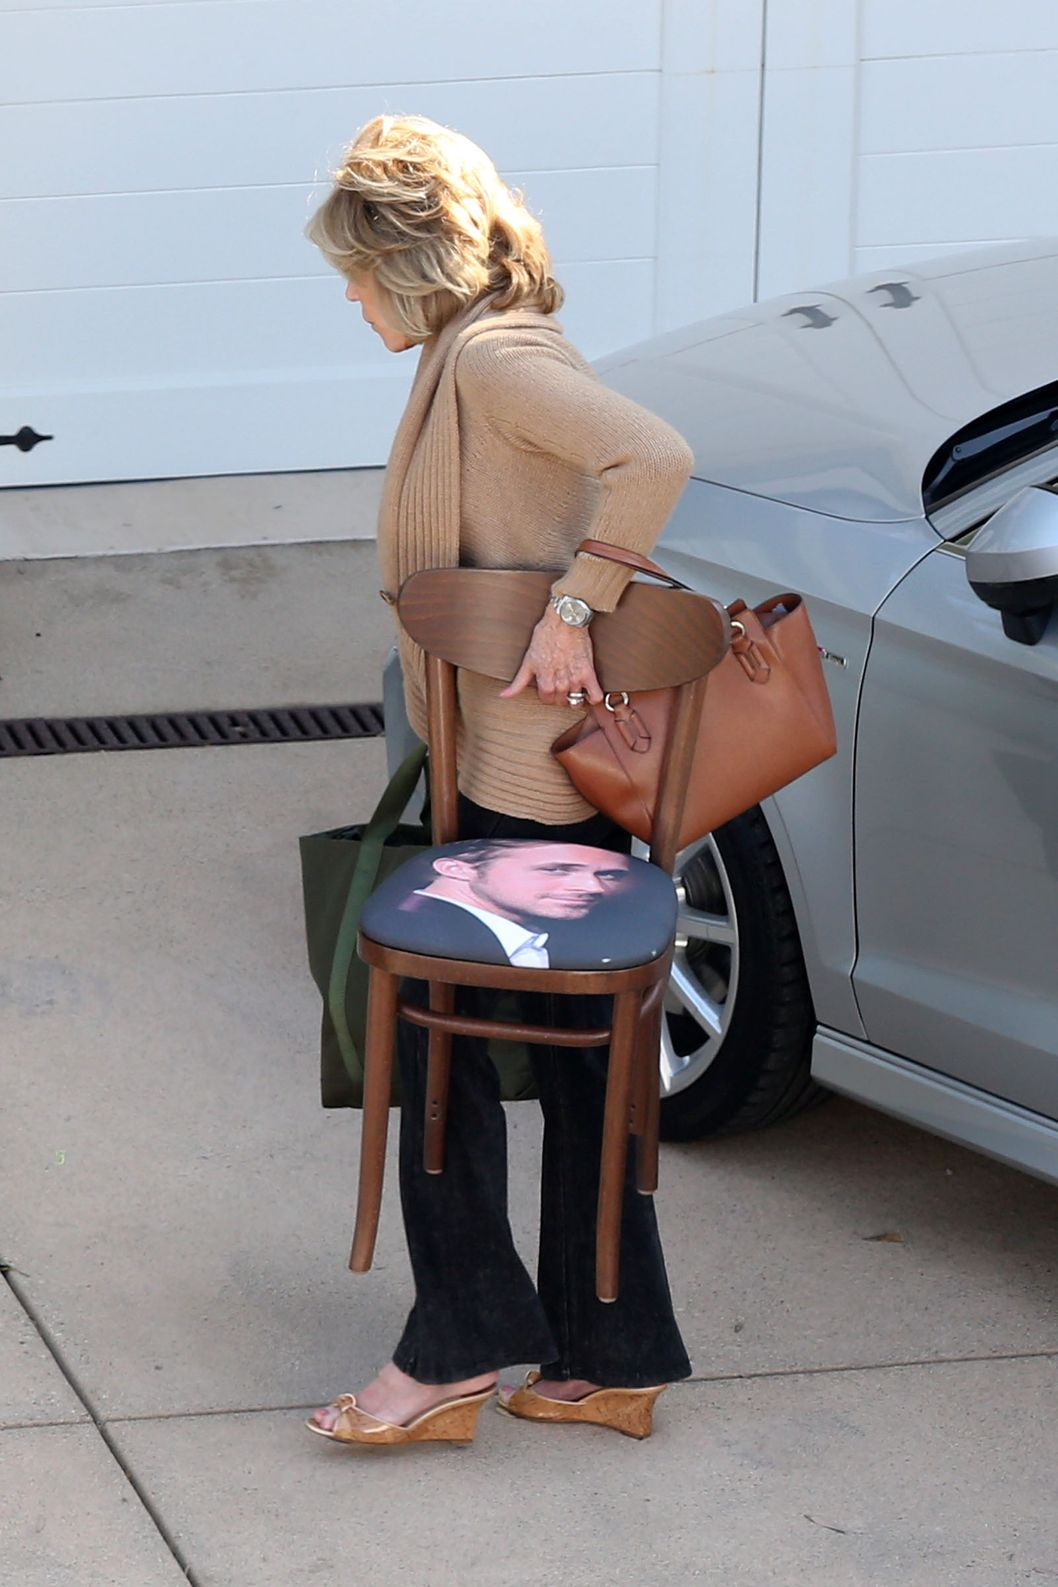 Jane Fonda wears a leg brace between takes on the set of 'Grace and Frankie'.  Fonda took the weight of her feet in between takes of the upcoming tv show which co-stars Martin Sheen and Brooklyn Decker. Jane, who plays Grace in the show, was seen carrying luggage and a chair with Ryan Gosling's face on the seat cover, into a house in Malibu. Fonda waved to fans who had pulled over on the Pacific Coast Highway to try and catch a glimpse of the star.<P>Pictured: Jane Fonda<P><B>Ref: SPL817304  070814  </B><BR/>Picture by: Splash News<BR/></P><P><B>Splash News and Pictures</B><BR/>Los Angeles:	310-821-2666<BR/>New York:	212-619-2666<BR/>London:	870-934-2666<BR/>photodesk@splashnews.com<BR/></P>